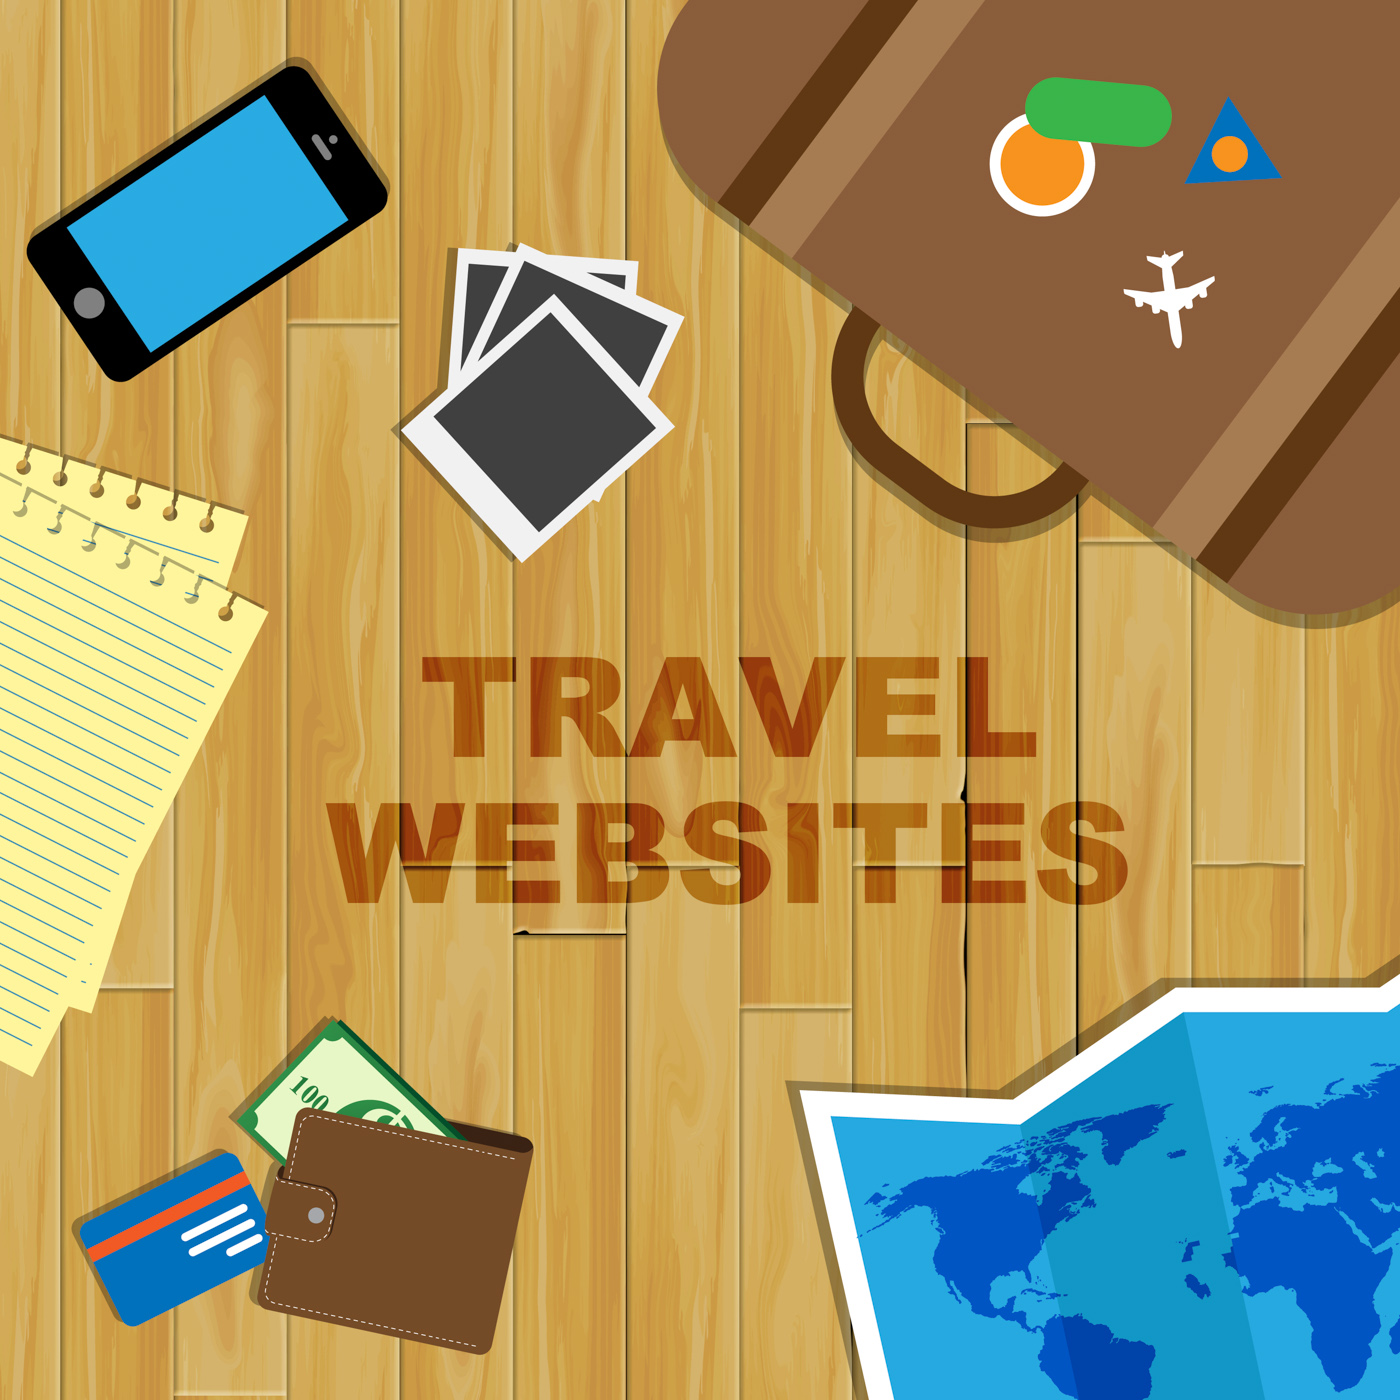 Travel websites indicates tours explore and journey photo